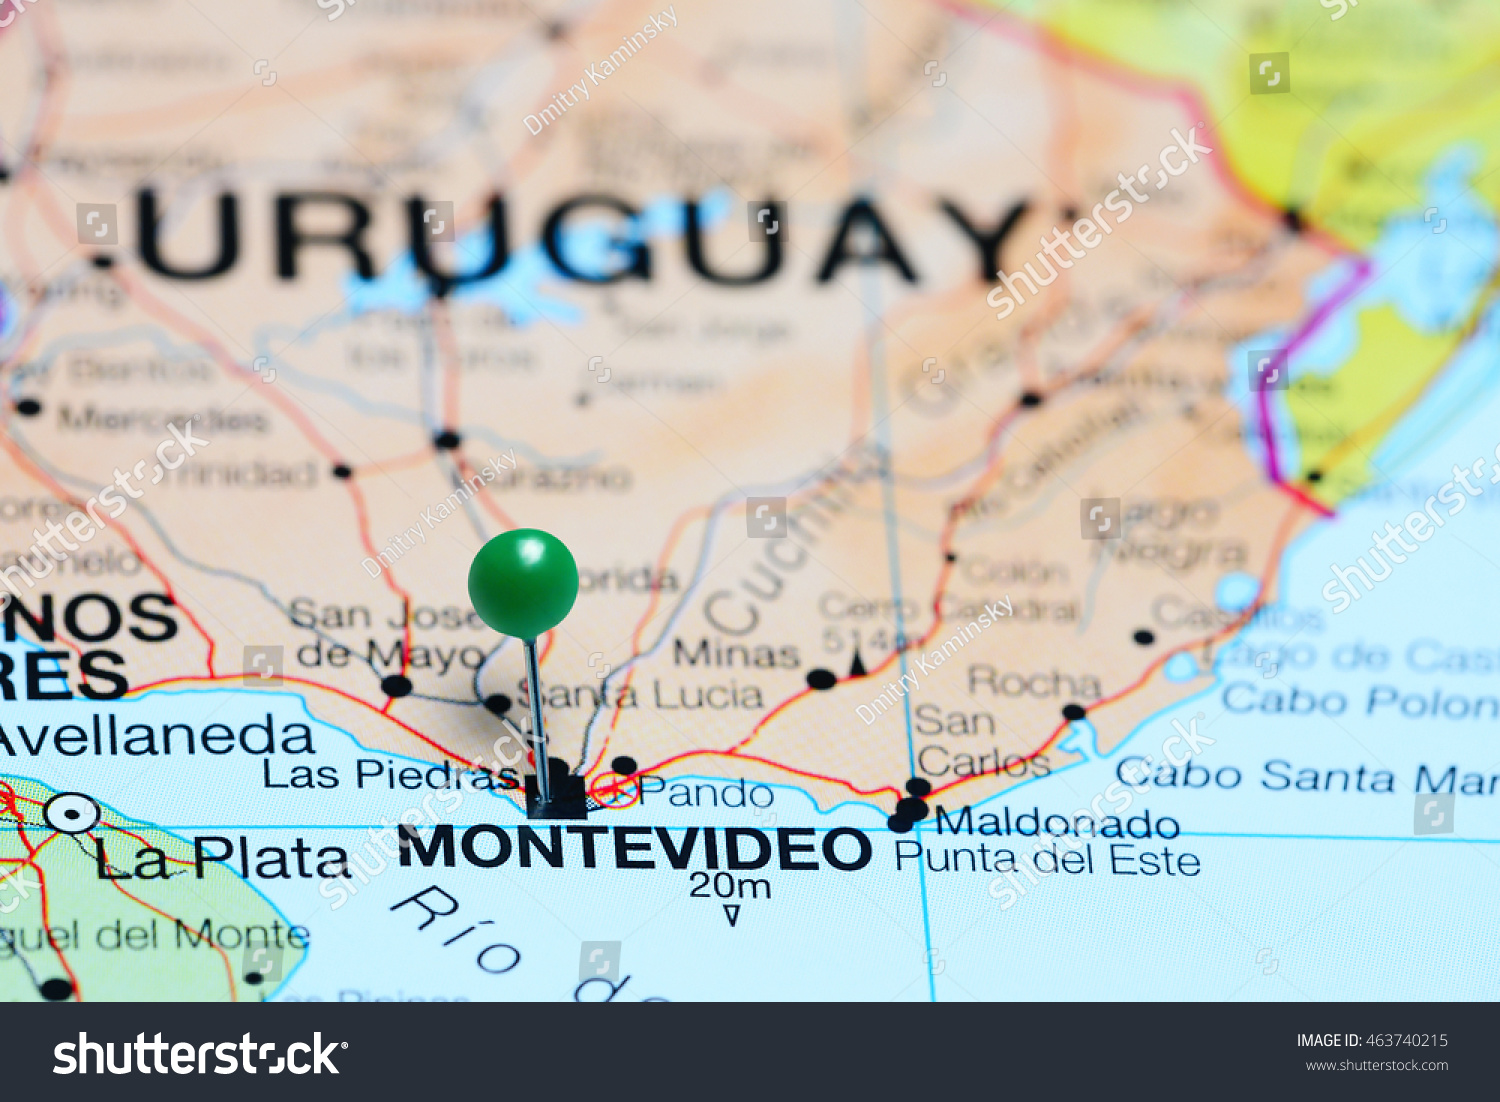 Montevideo Pinned On Map Uruguay Stock Photo Shutterstock - Montevideo map